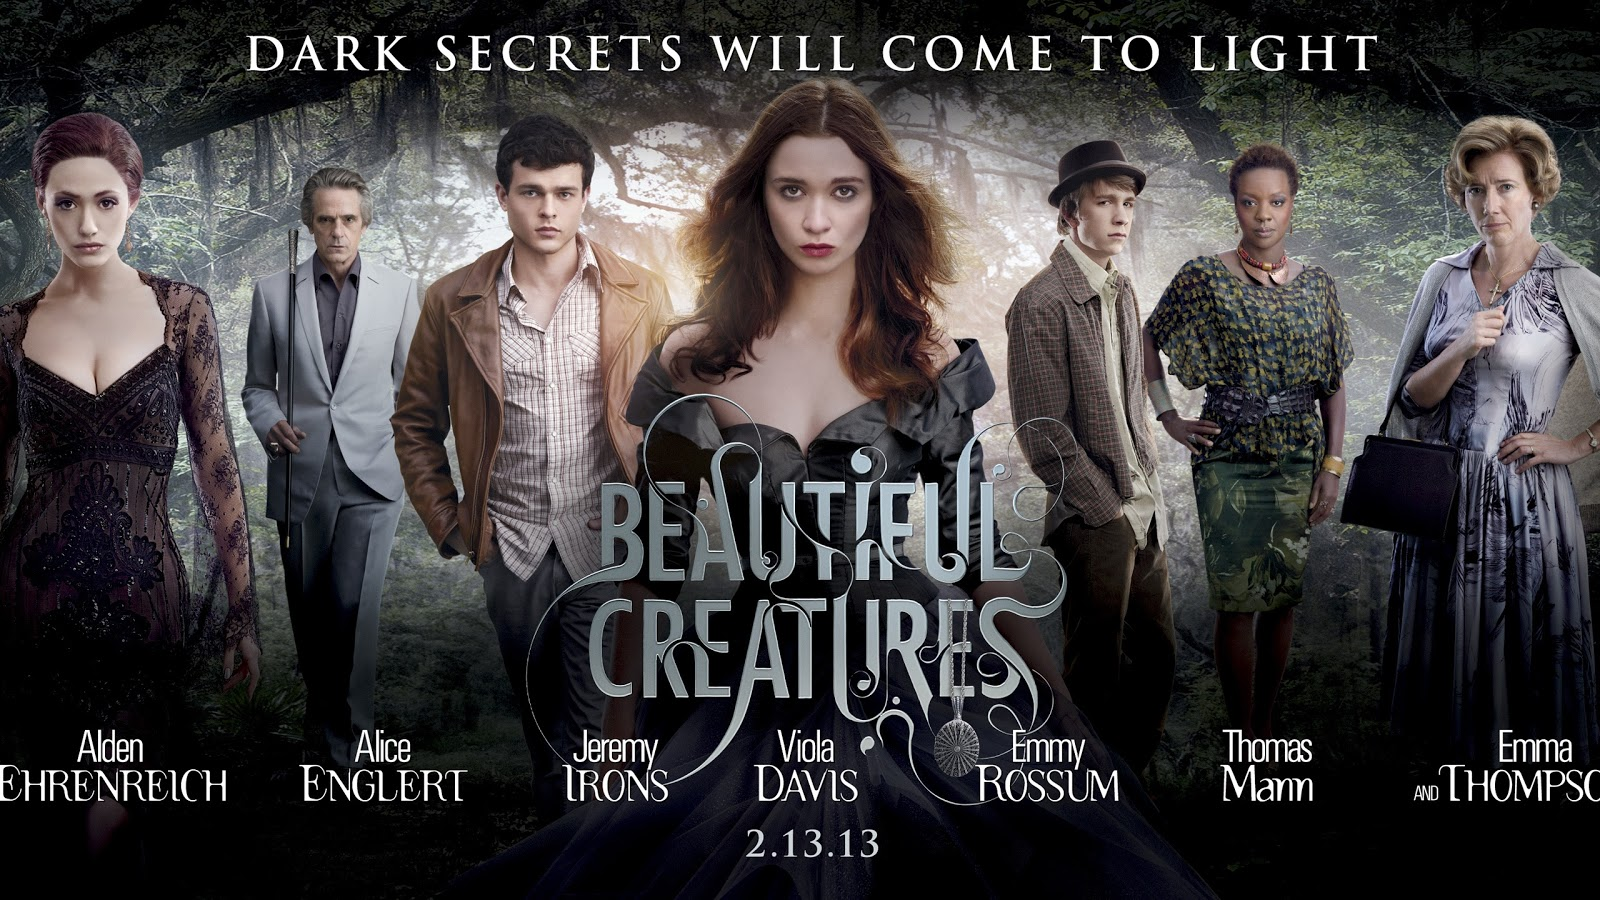 http://4.bp.blogspot.com/-vRFNZfuytUc/UNfdTB6x3DI/AAAAAAAAHa0/aL3E96ilsBU/s1600/beautiful_creatures_2013_movie-2560x1440+(8apple.blogspot.com).jpg